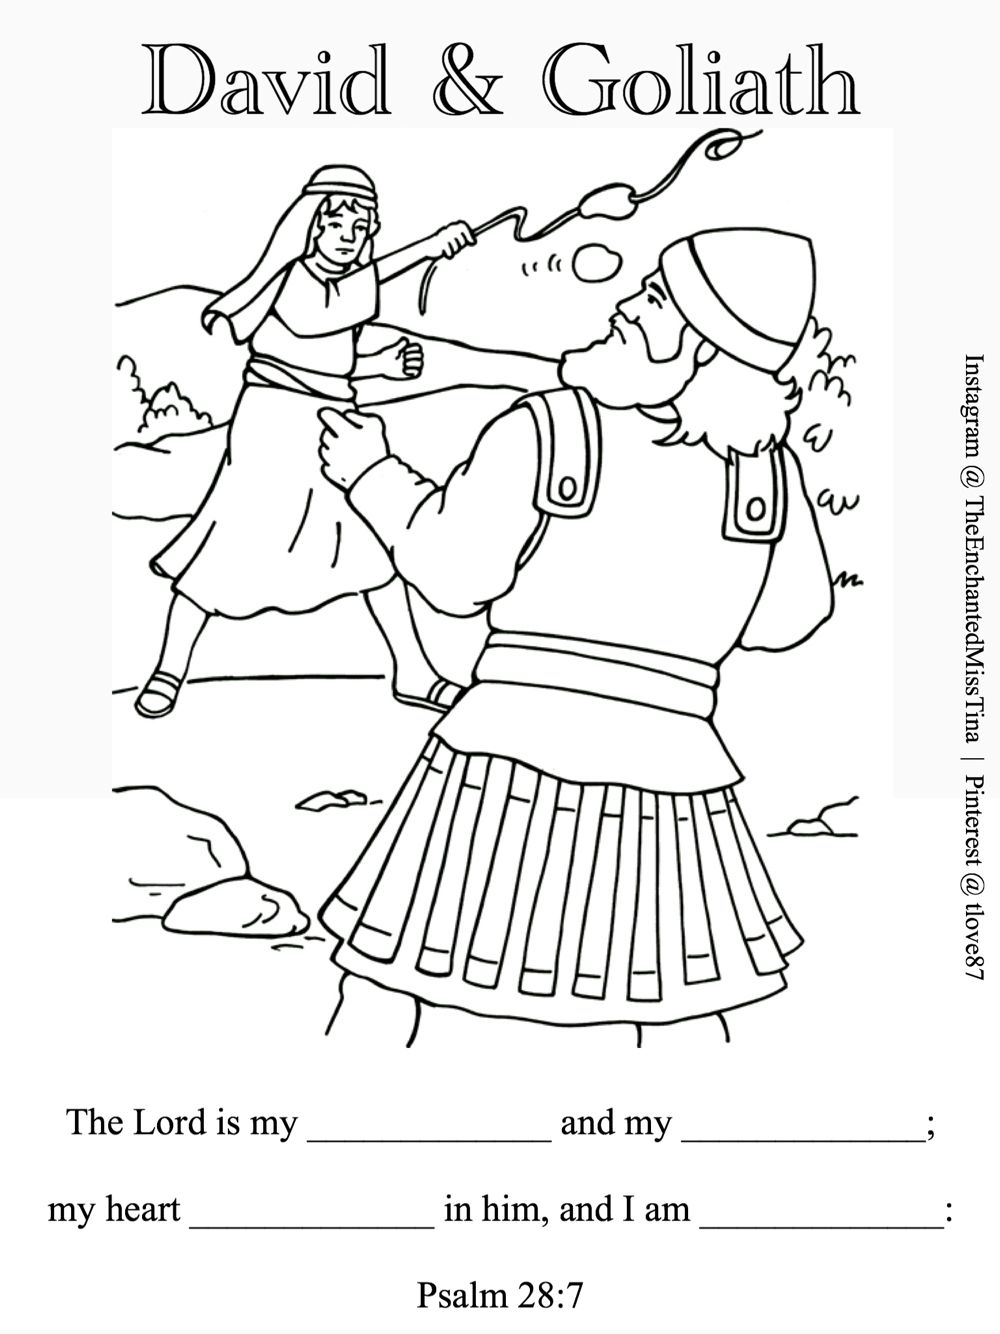 David and Goliath coloring page Psalm 287 fill in memory verse